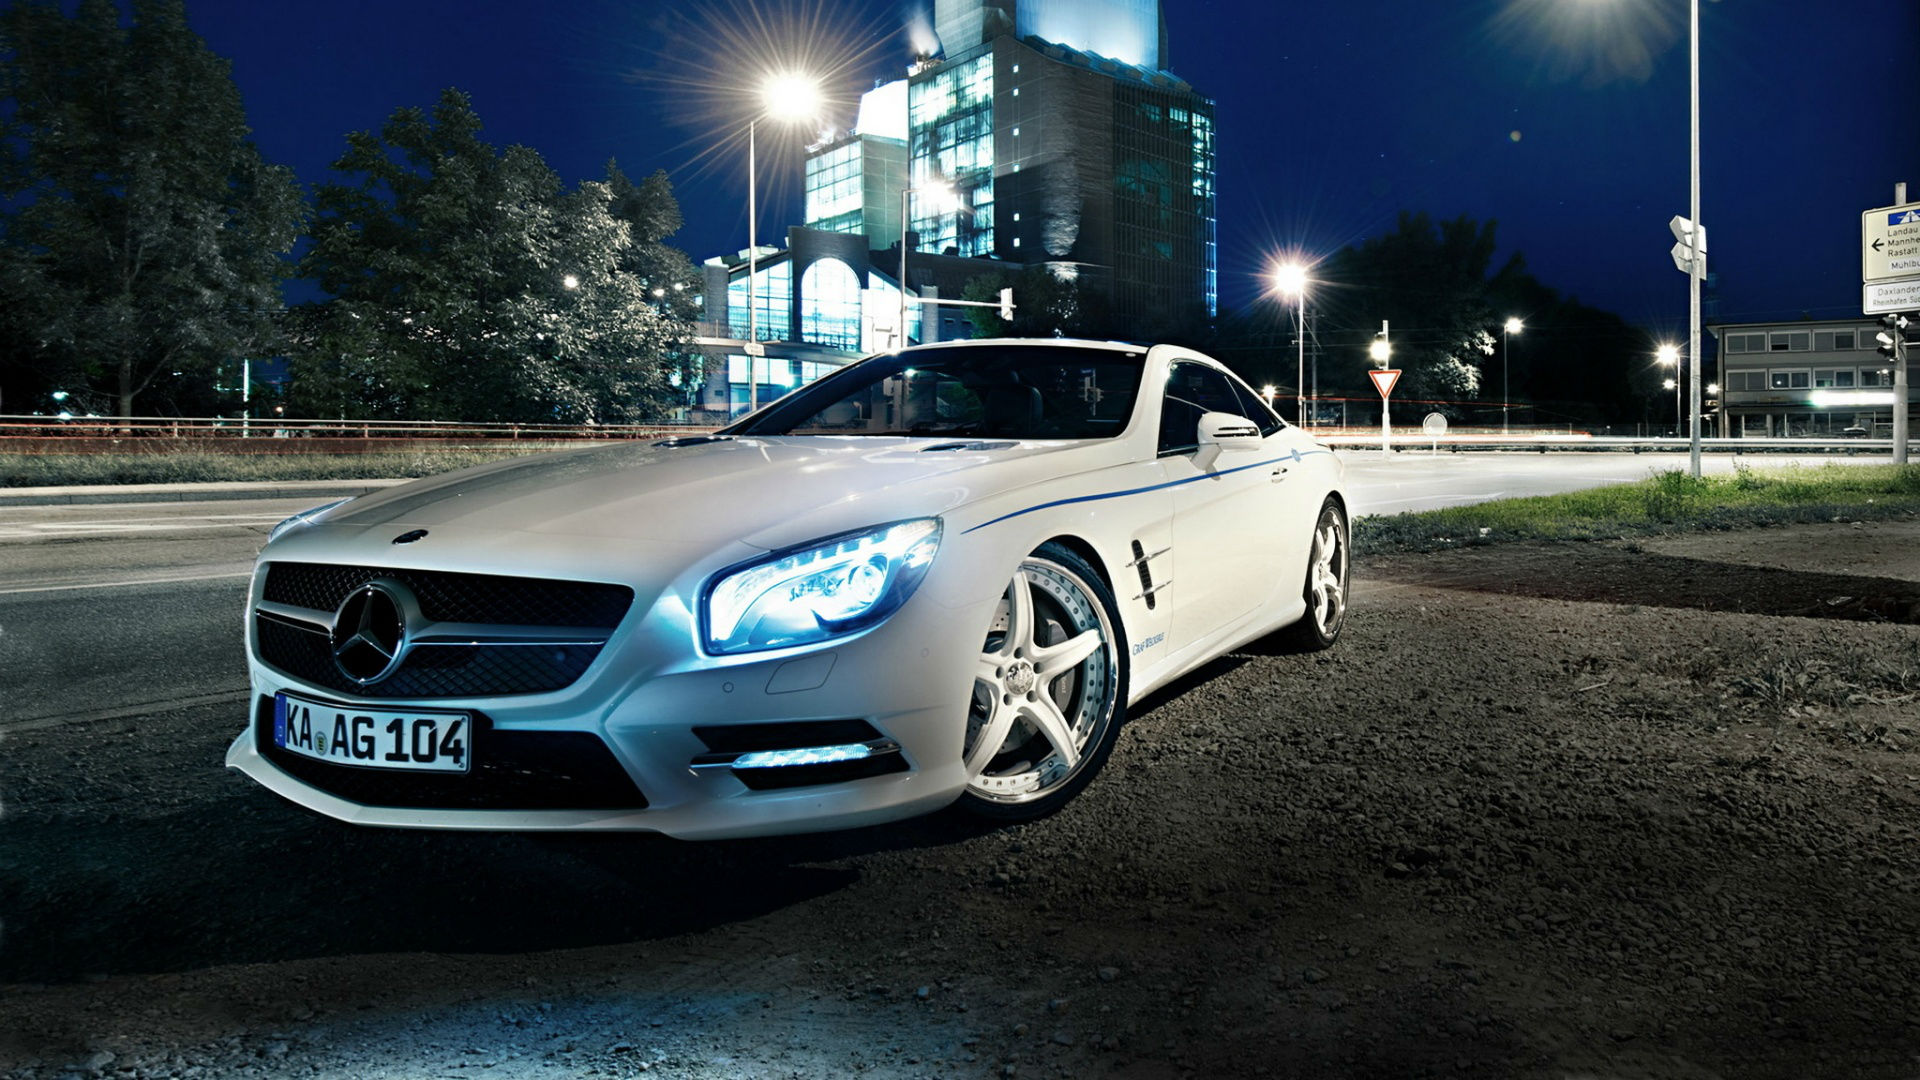 mercedes benz sl500 night wallpaper 1920x1080 1920x1080